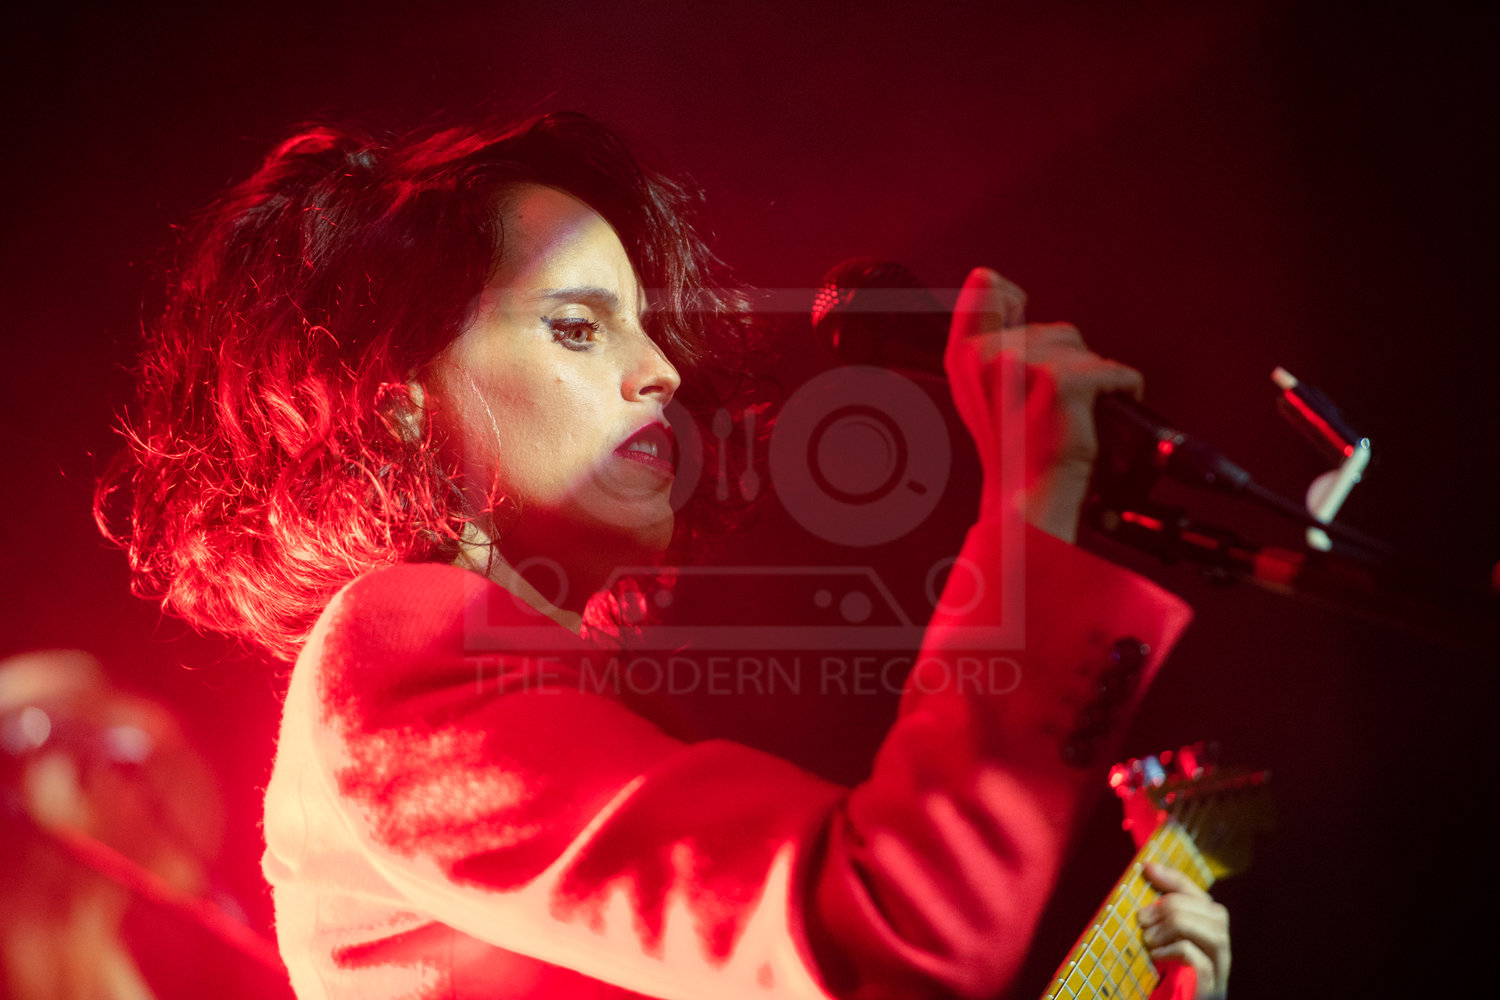 ANNA CALVI PERFORMING AT GLASGOW'S ST. LUKE'S - 30.09.2018  PICTURE BY: ROBERTO RICCUITTI PHOTOGRAPHY